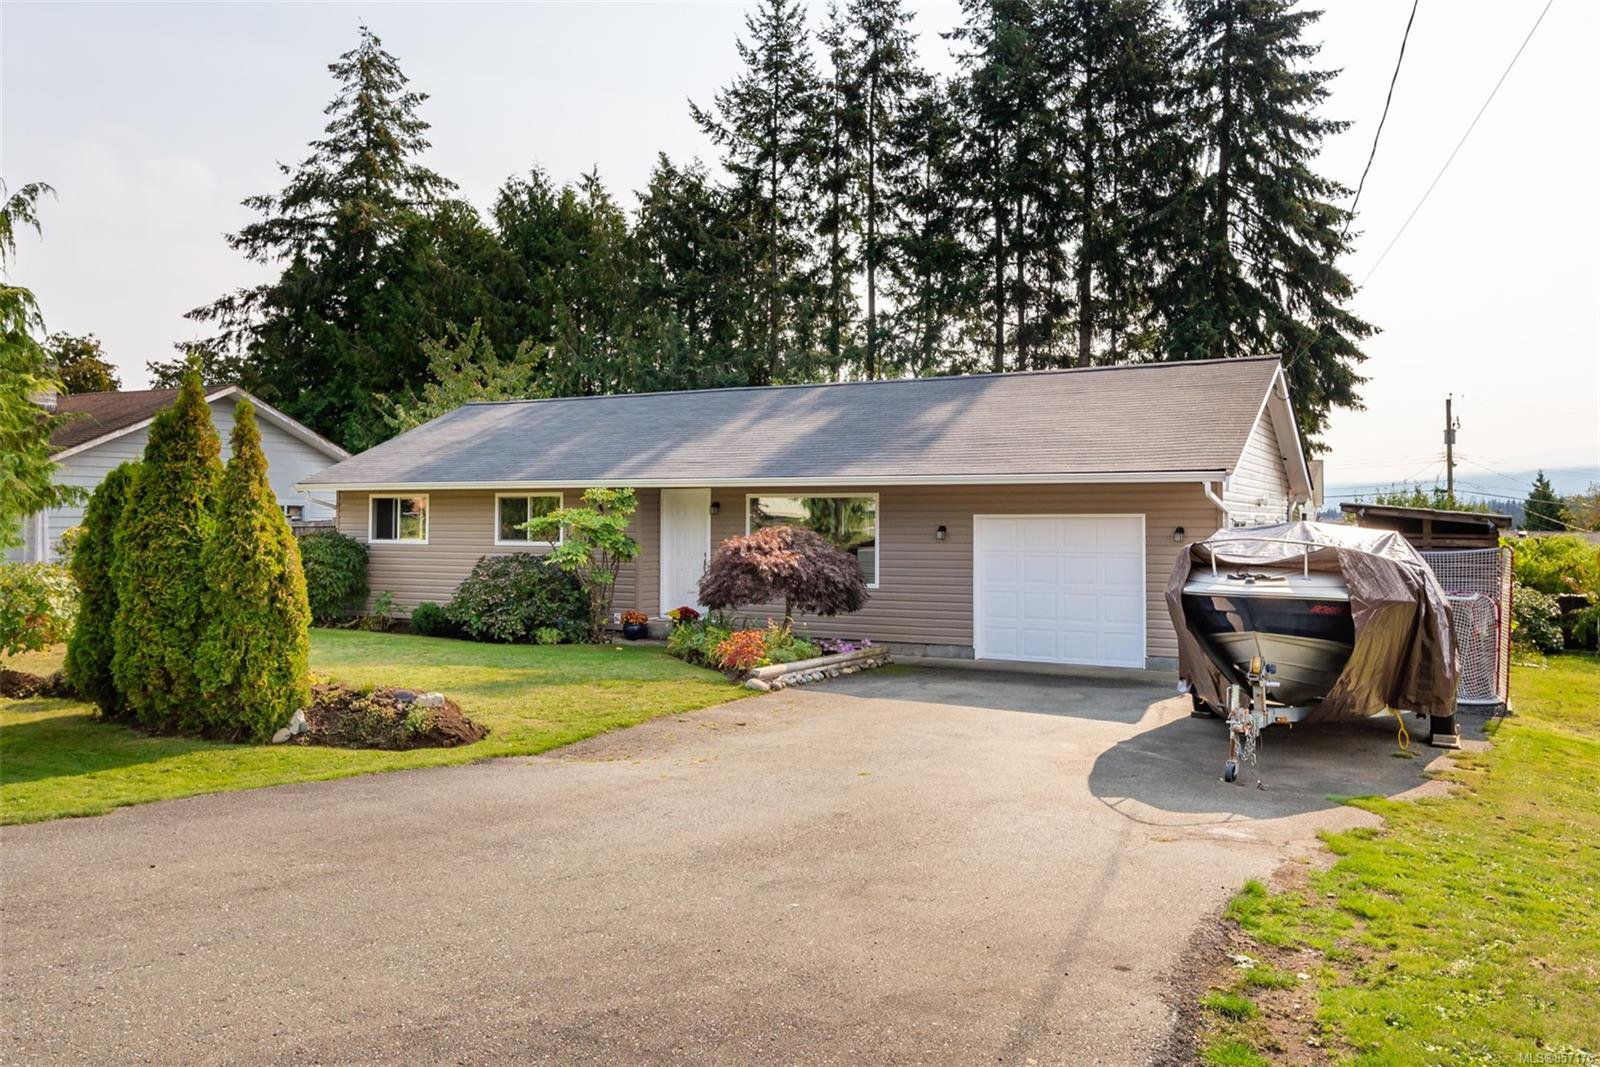 Main Photo: 663 Glenalan Rd in : CR Campbell River Central House for sale (Campbell River)  : MLS®# 857176